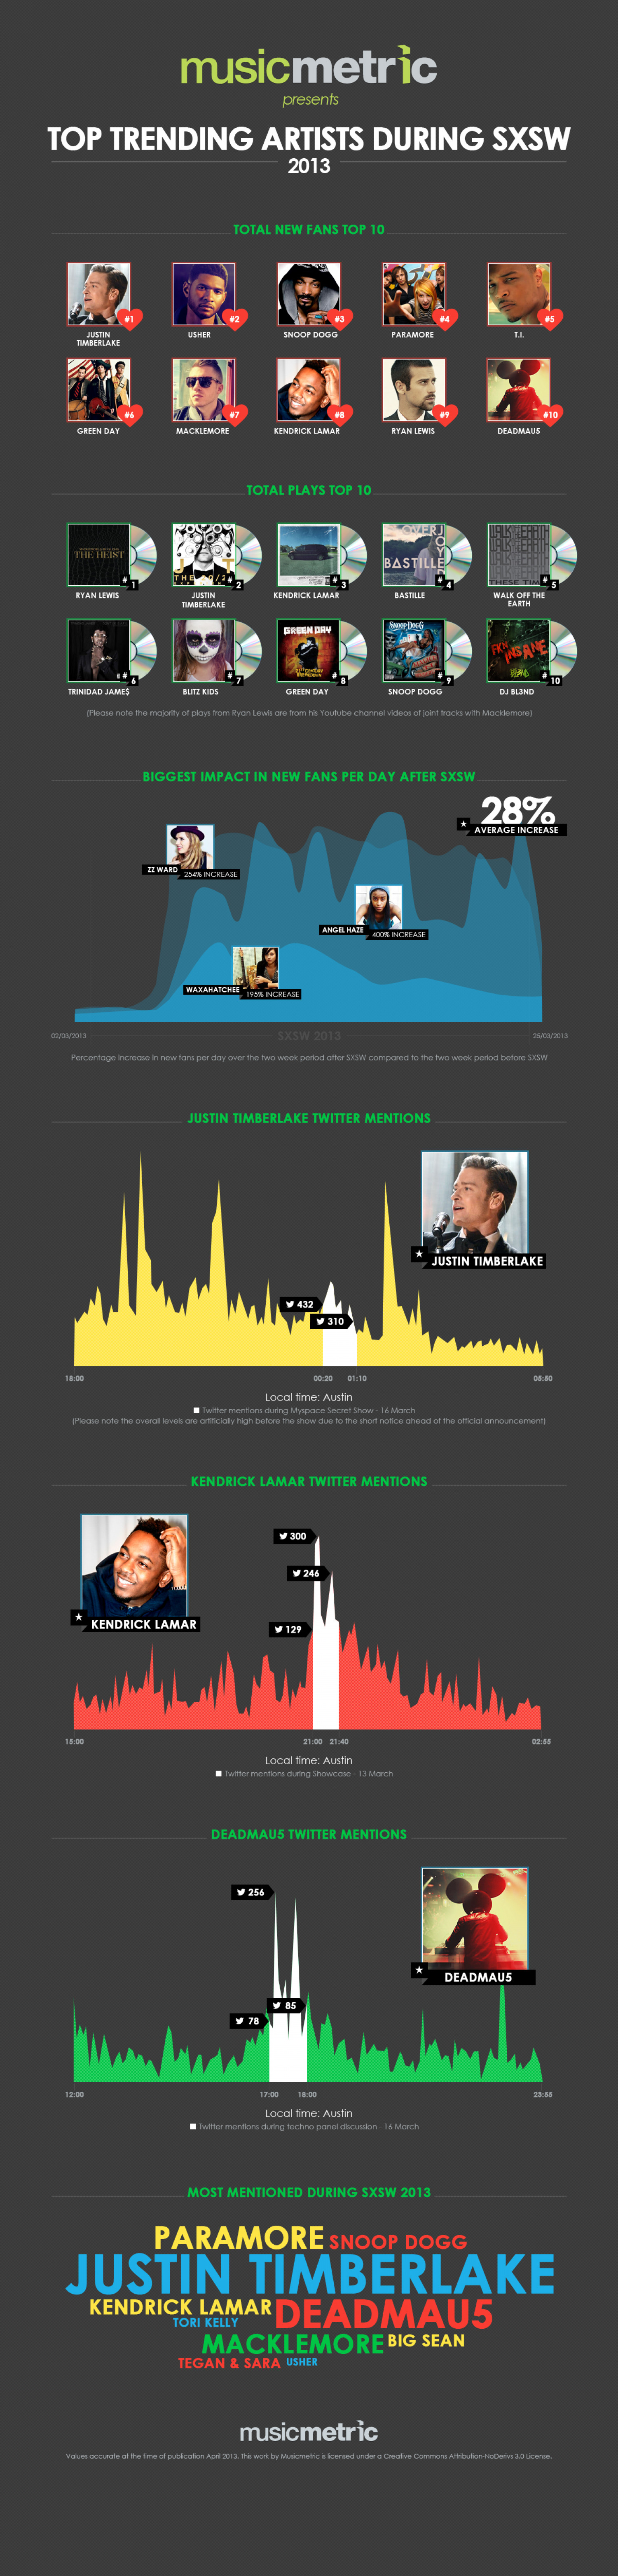 Top Trending Artists During SXSW 2013 Infographic